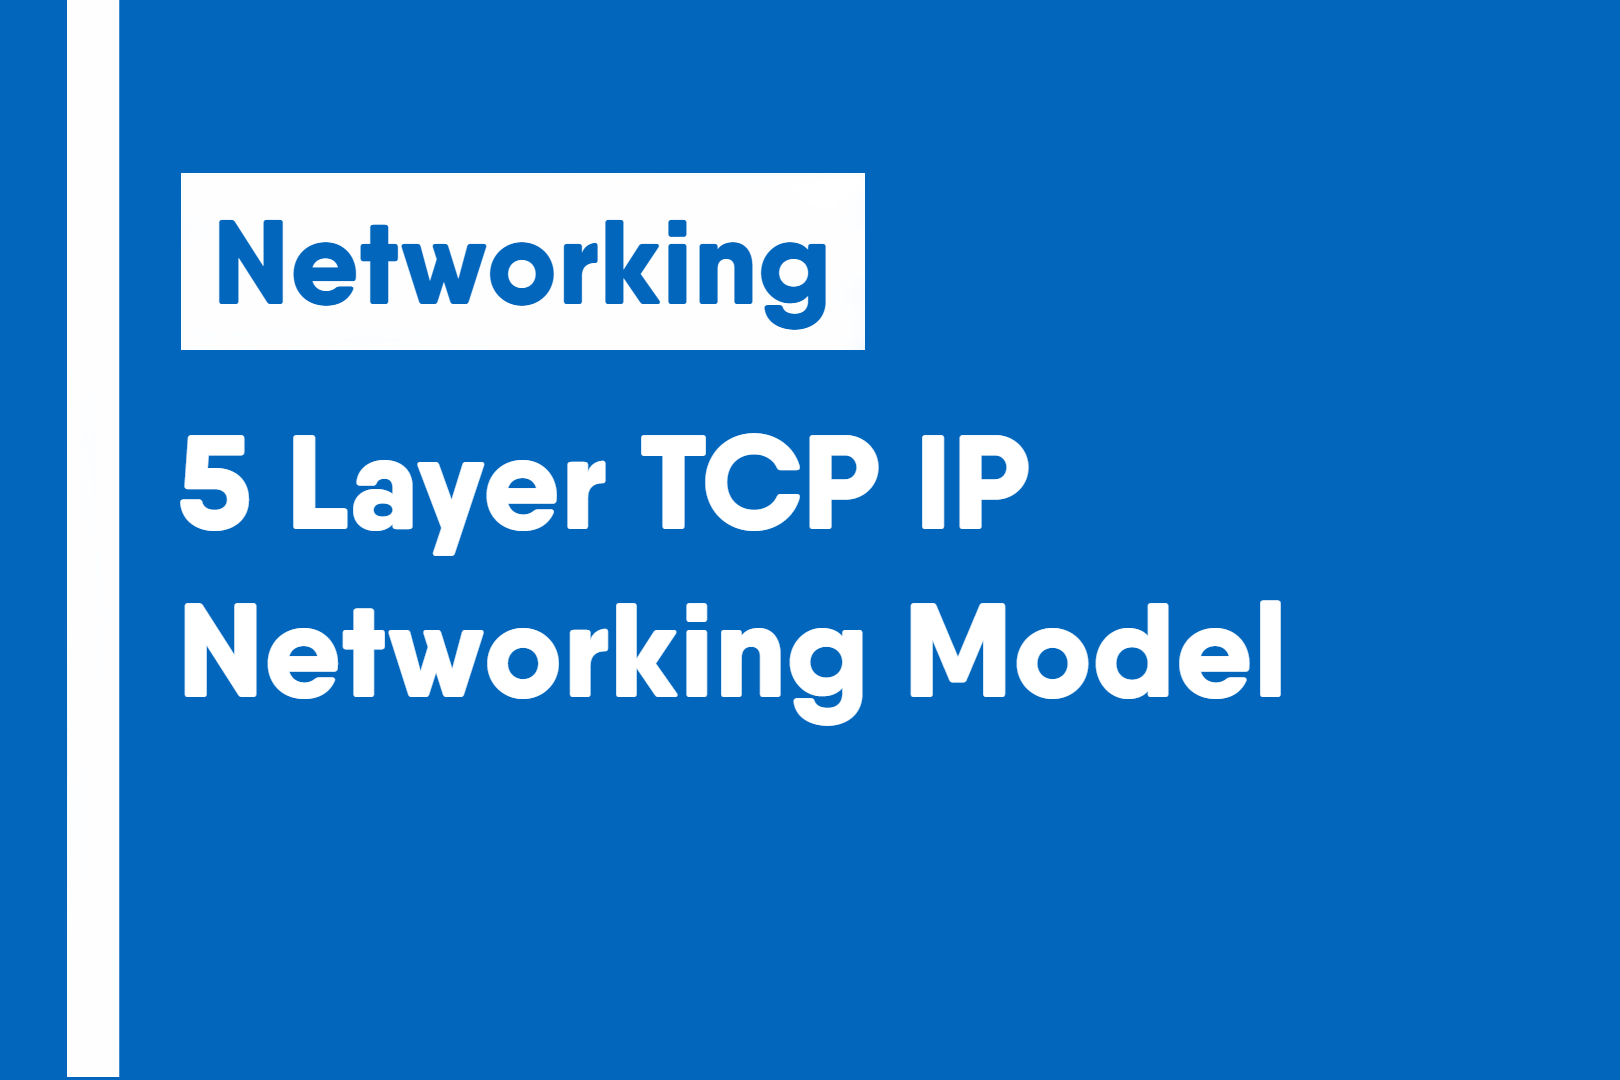 5 Layer TCP IP Networking Model